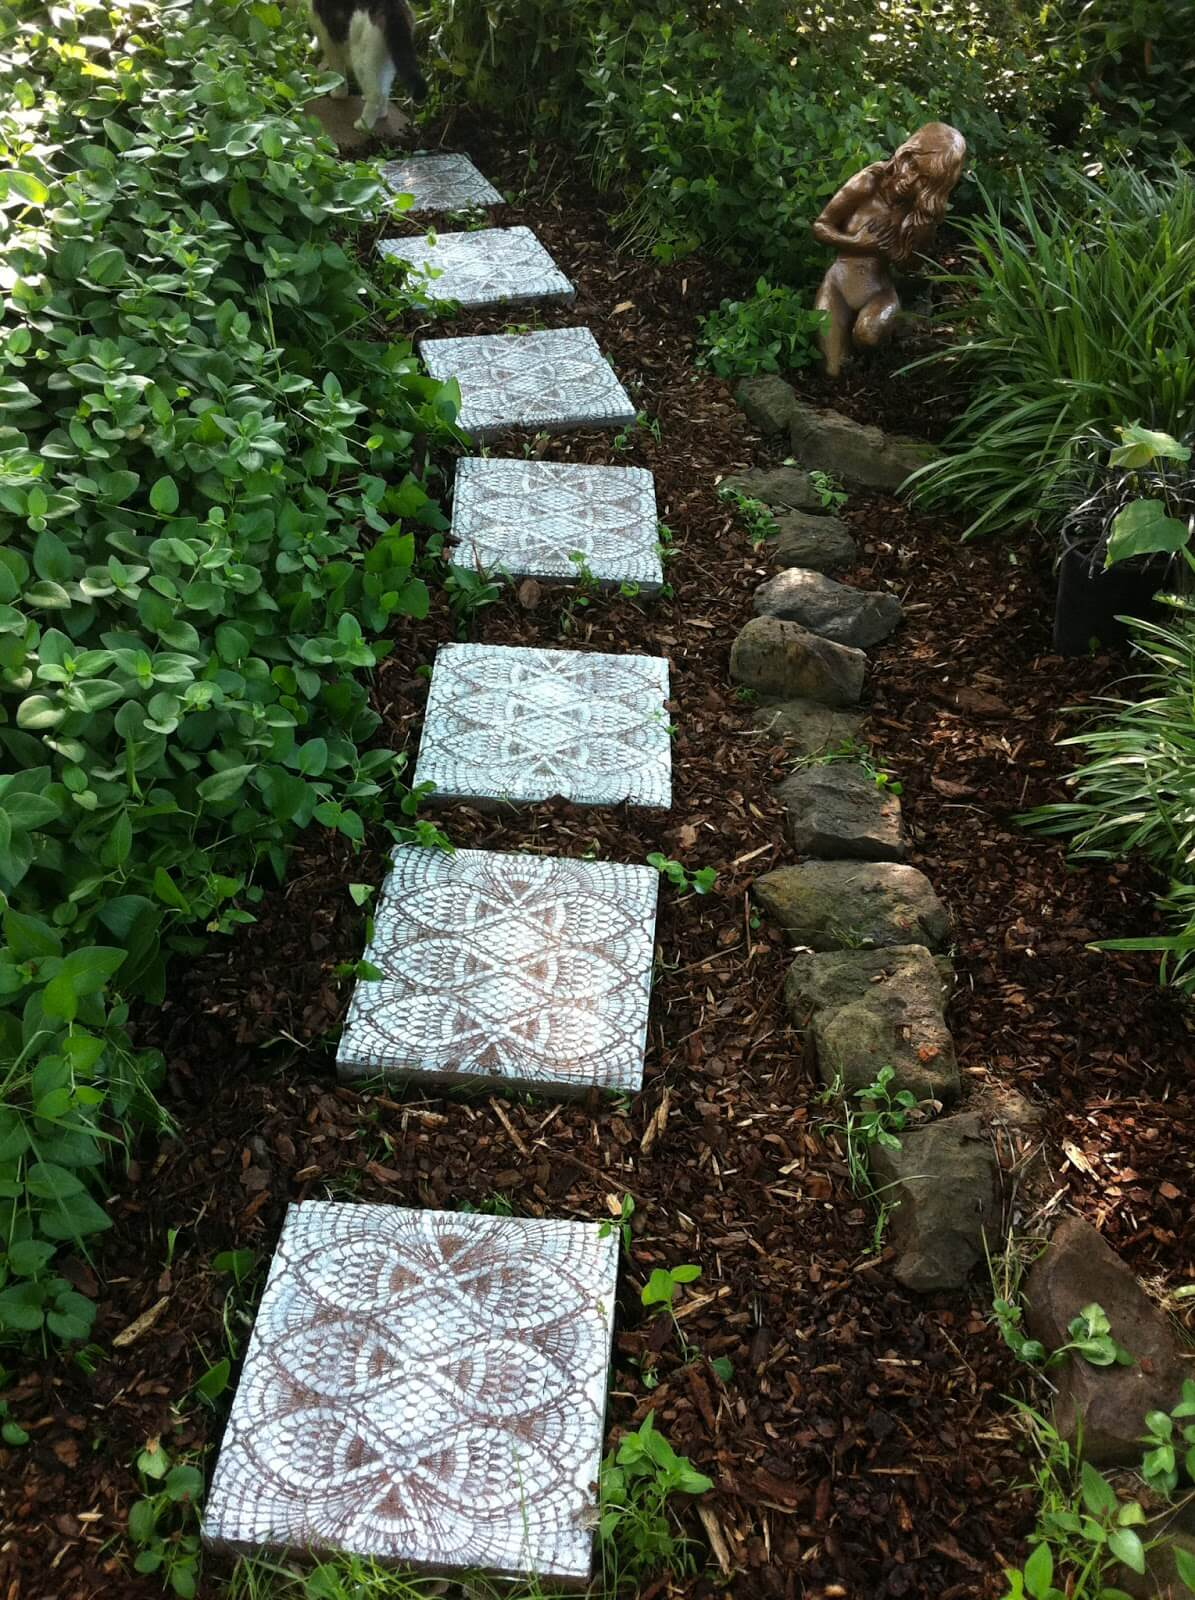 Show Off Custom Tiles Against Dark Mulch